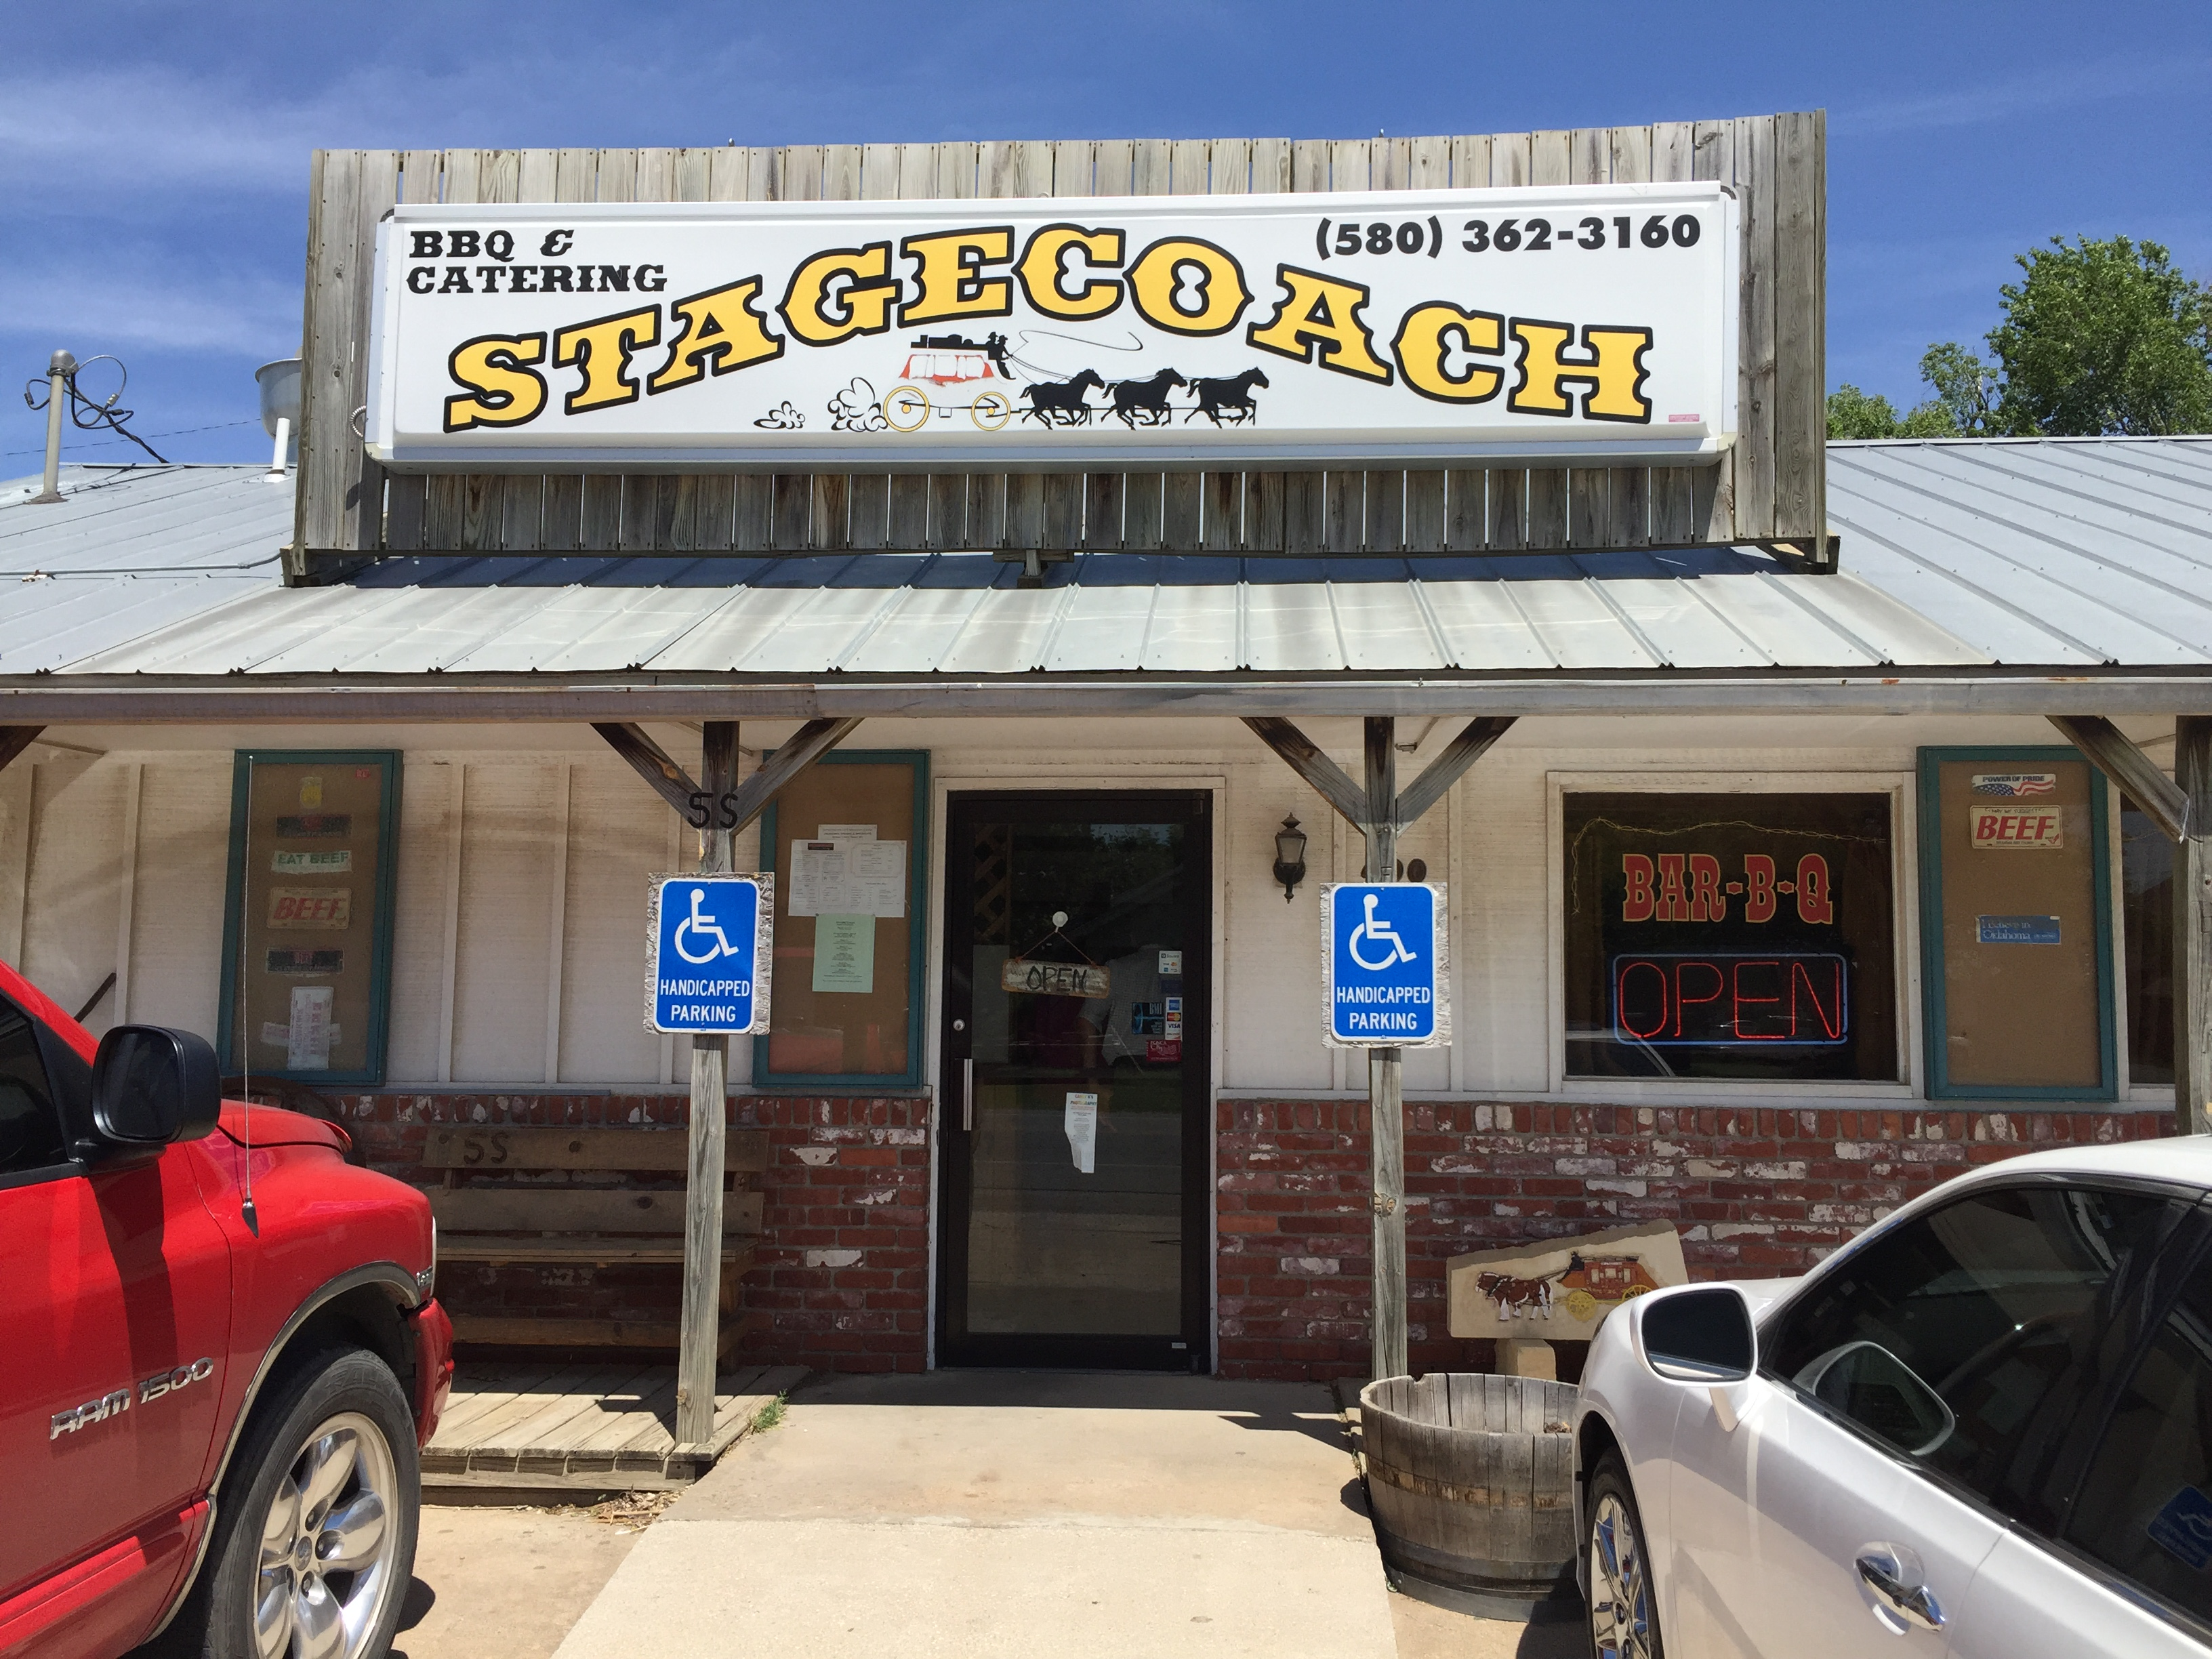 Stagecoach BBQ Restaurant and Catering